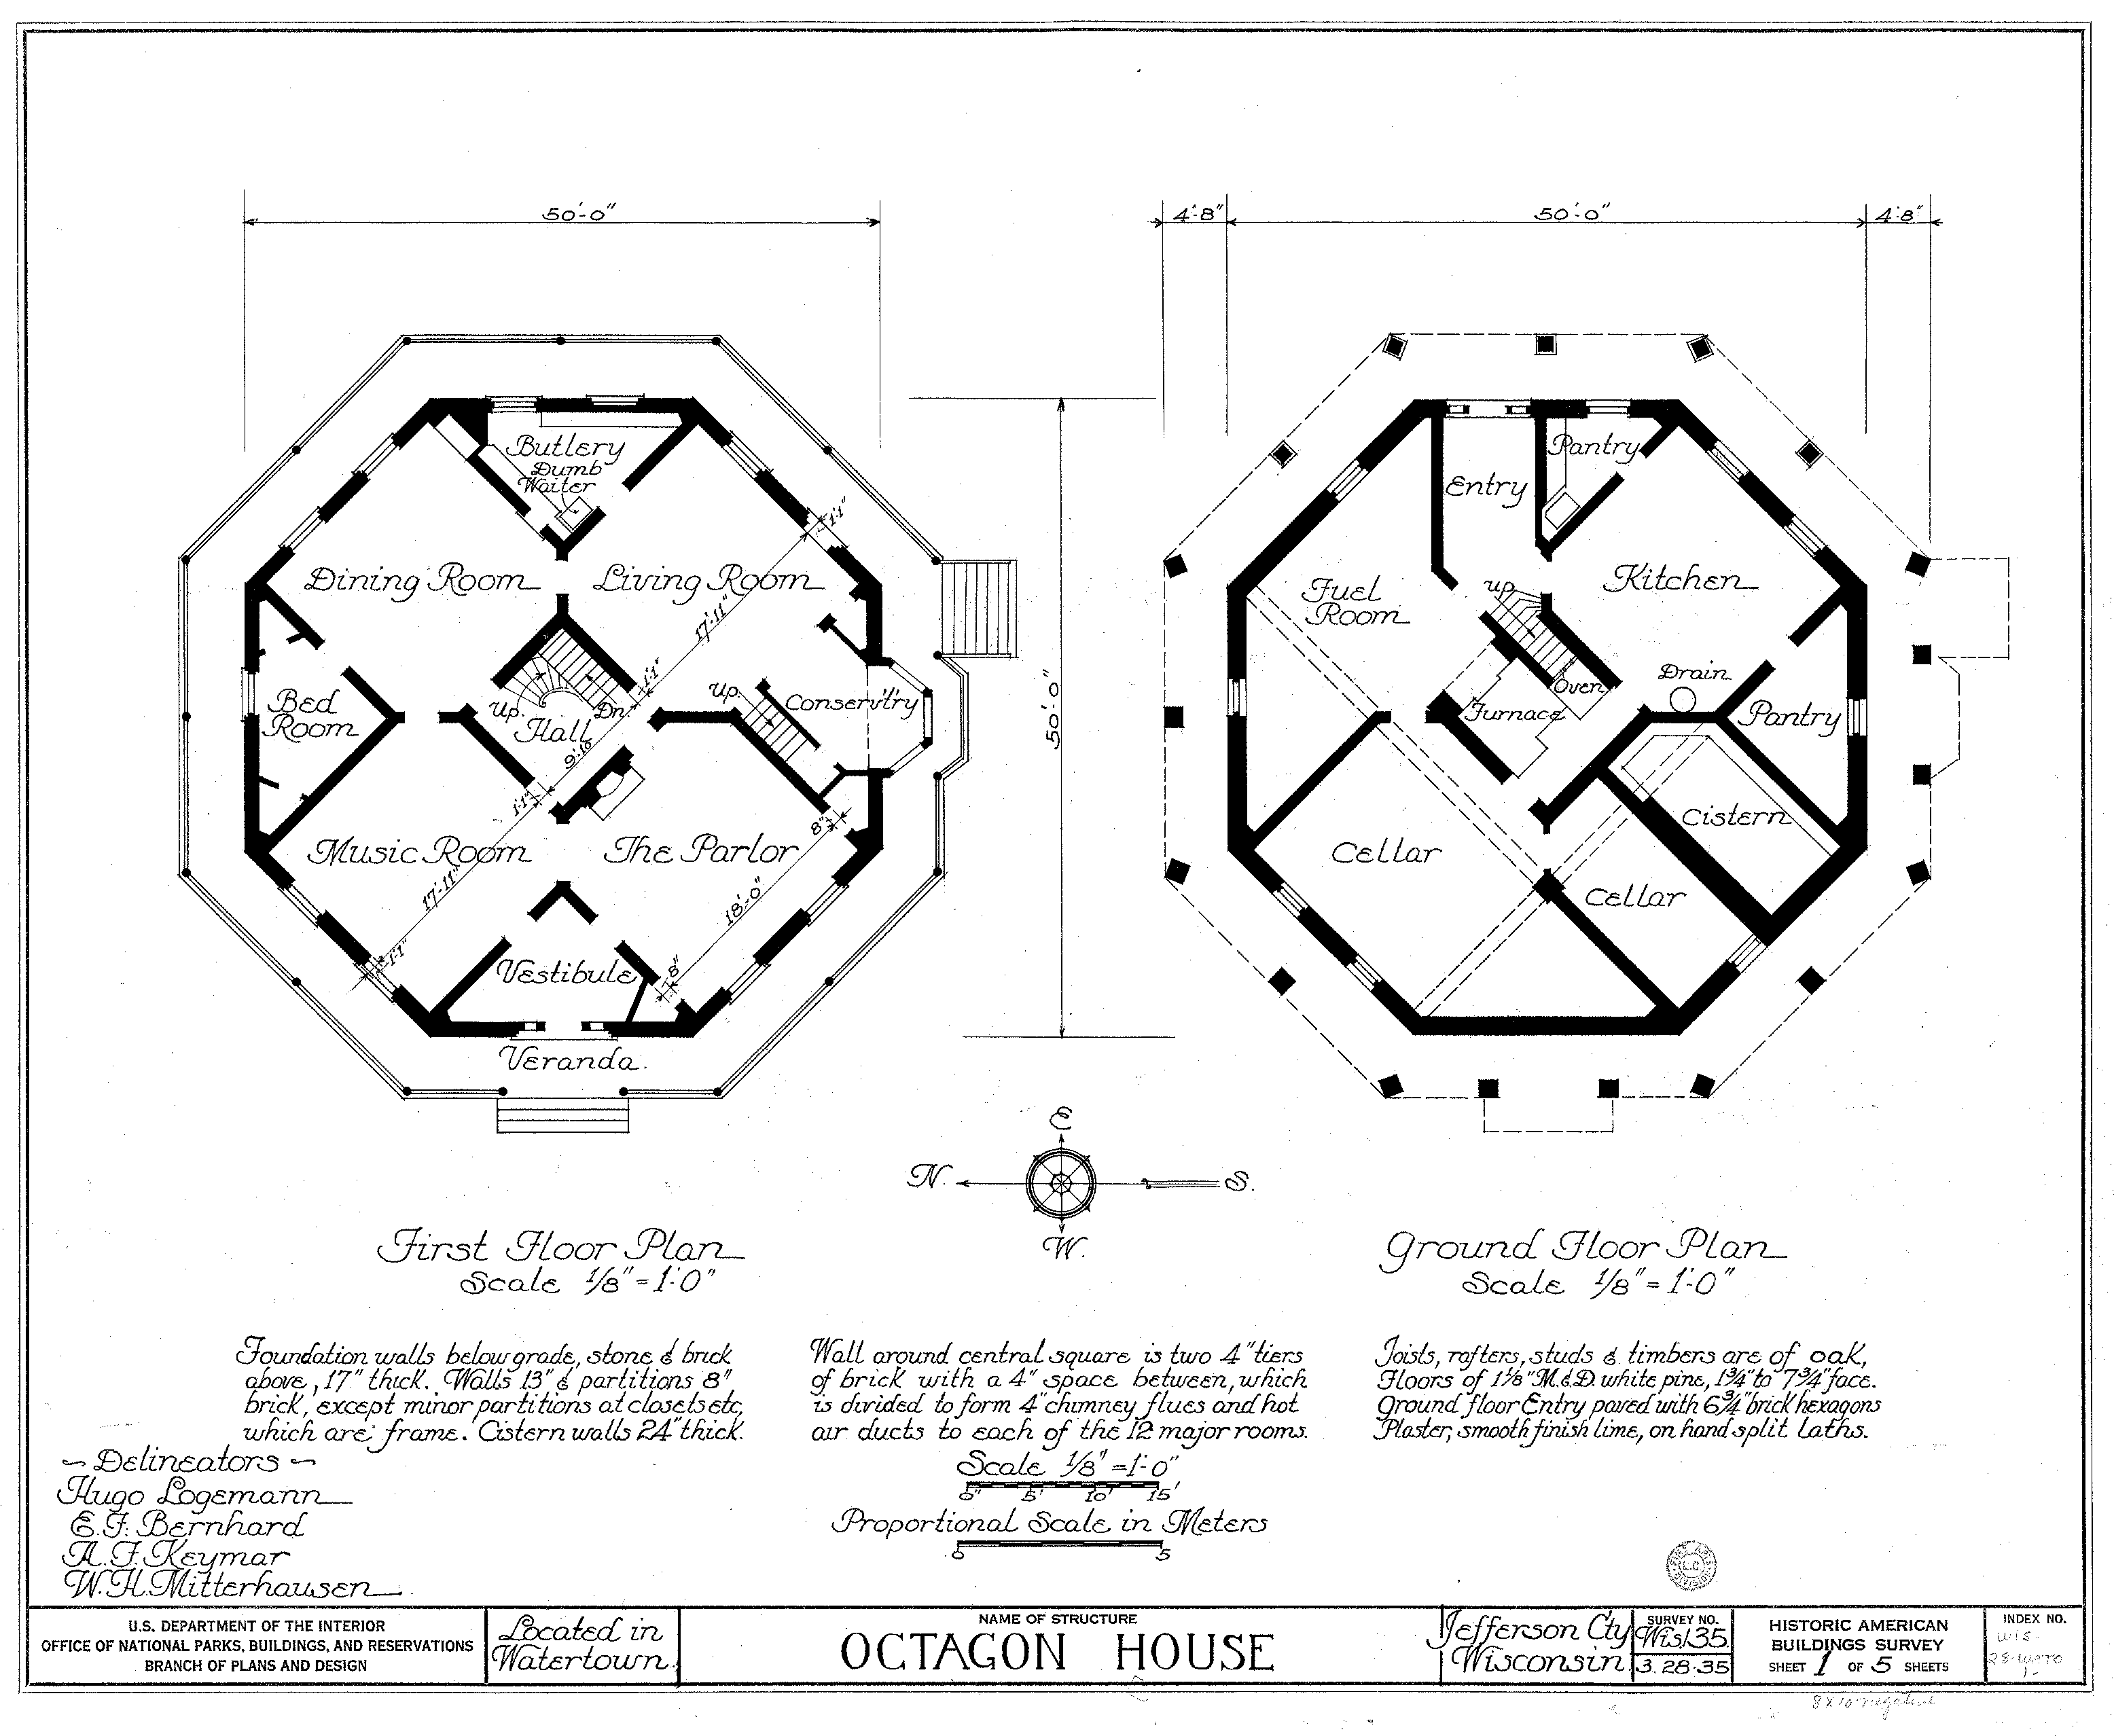 Details About Octagon House Plans Home Vintage Blueprint Design - Books on home design